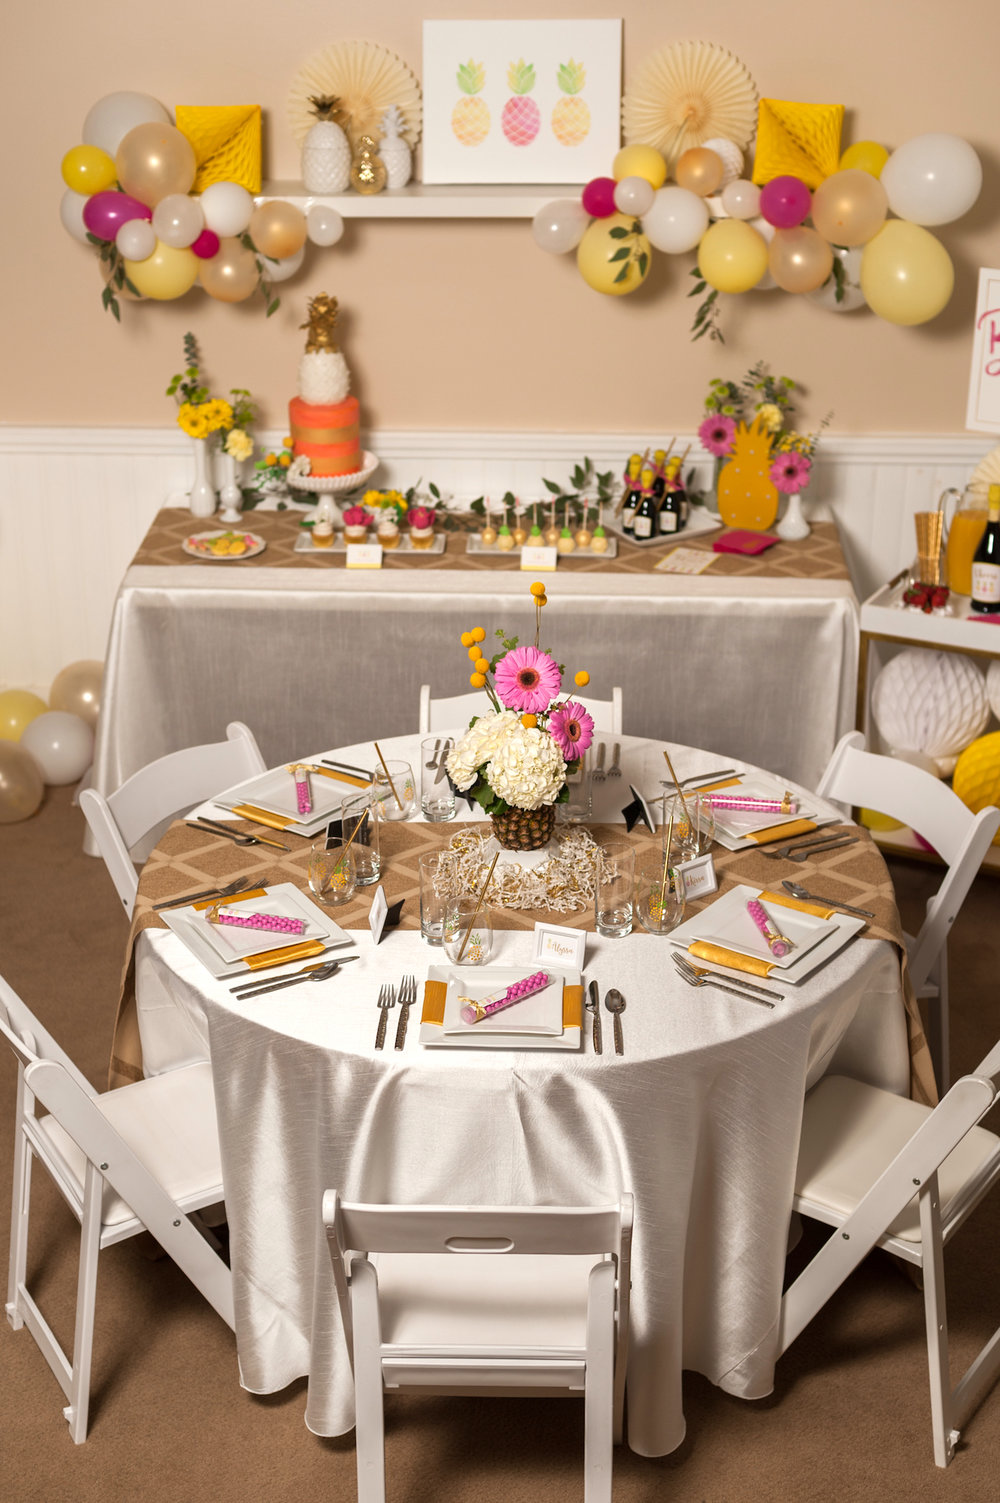 pineapple-bridal-shower-tablescape-2-091316.jpg